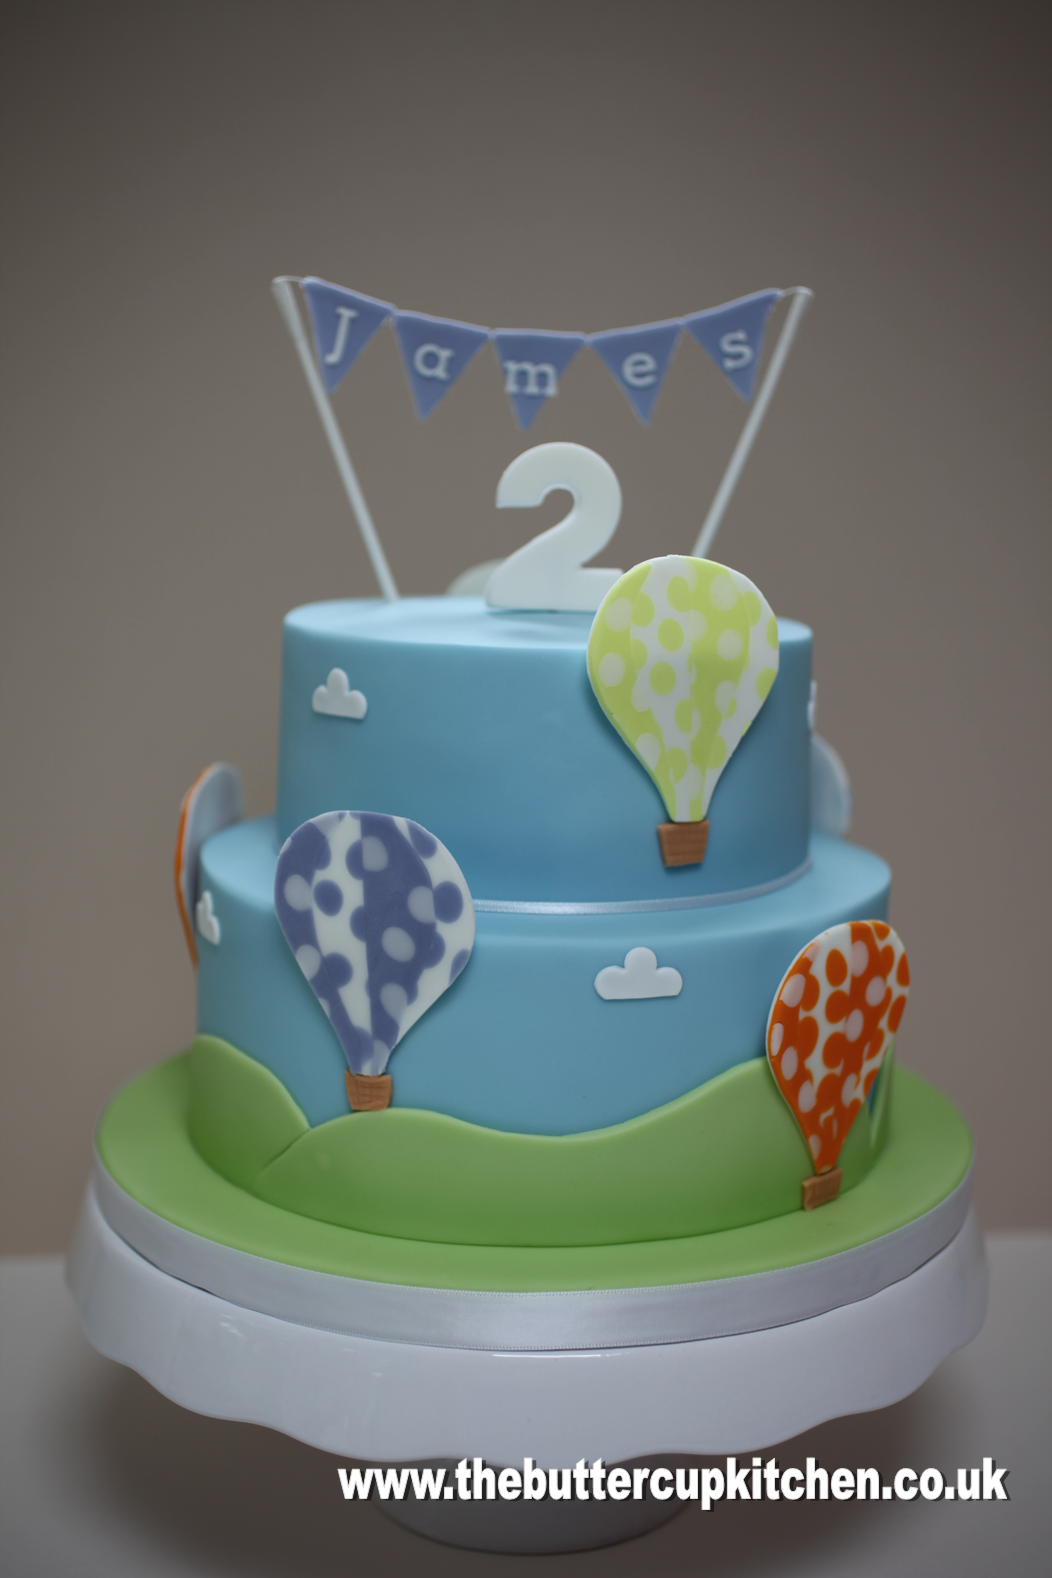 Hot Air Balloon Birthday Cake For A Two Year Old Boy By Www Thebuttercupkitchen Co Uk Balloon Birthday Cakes 2 Year Old Birthday Cake Boy Birthday Cake